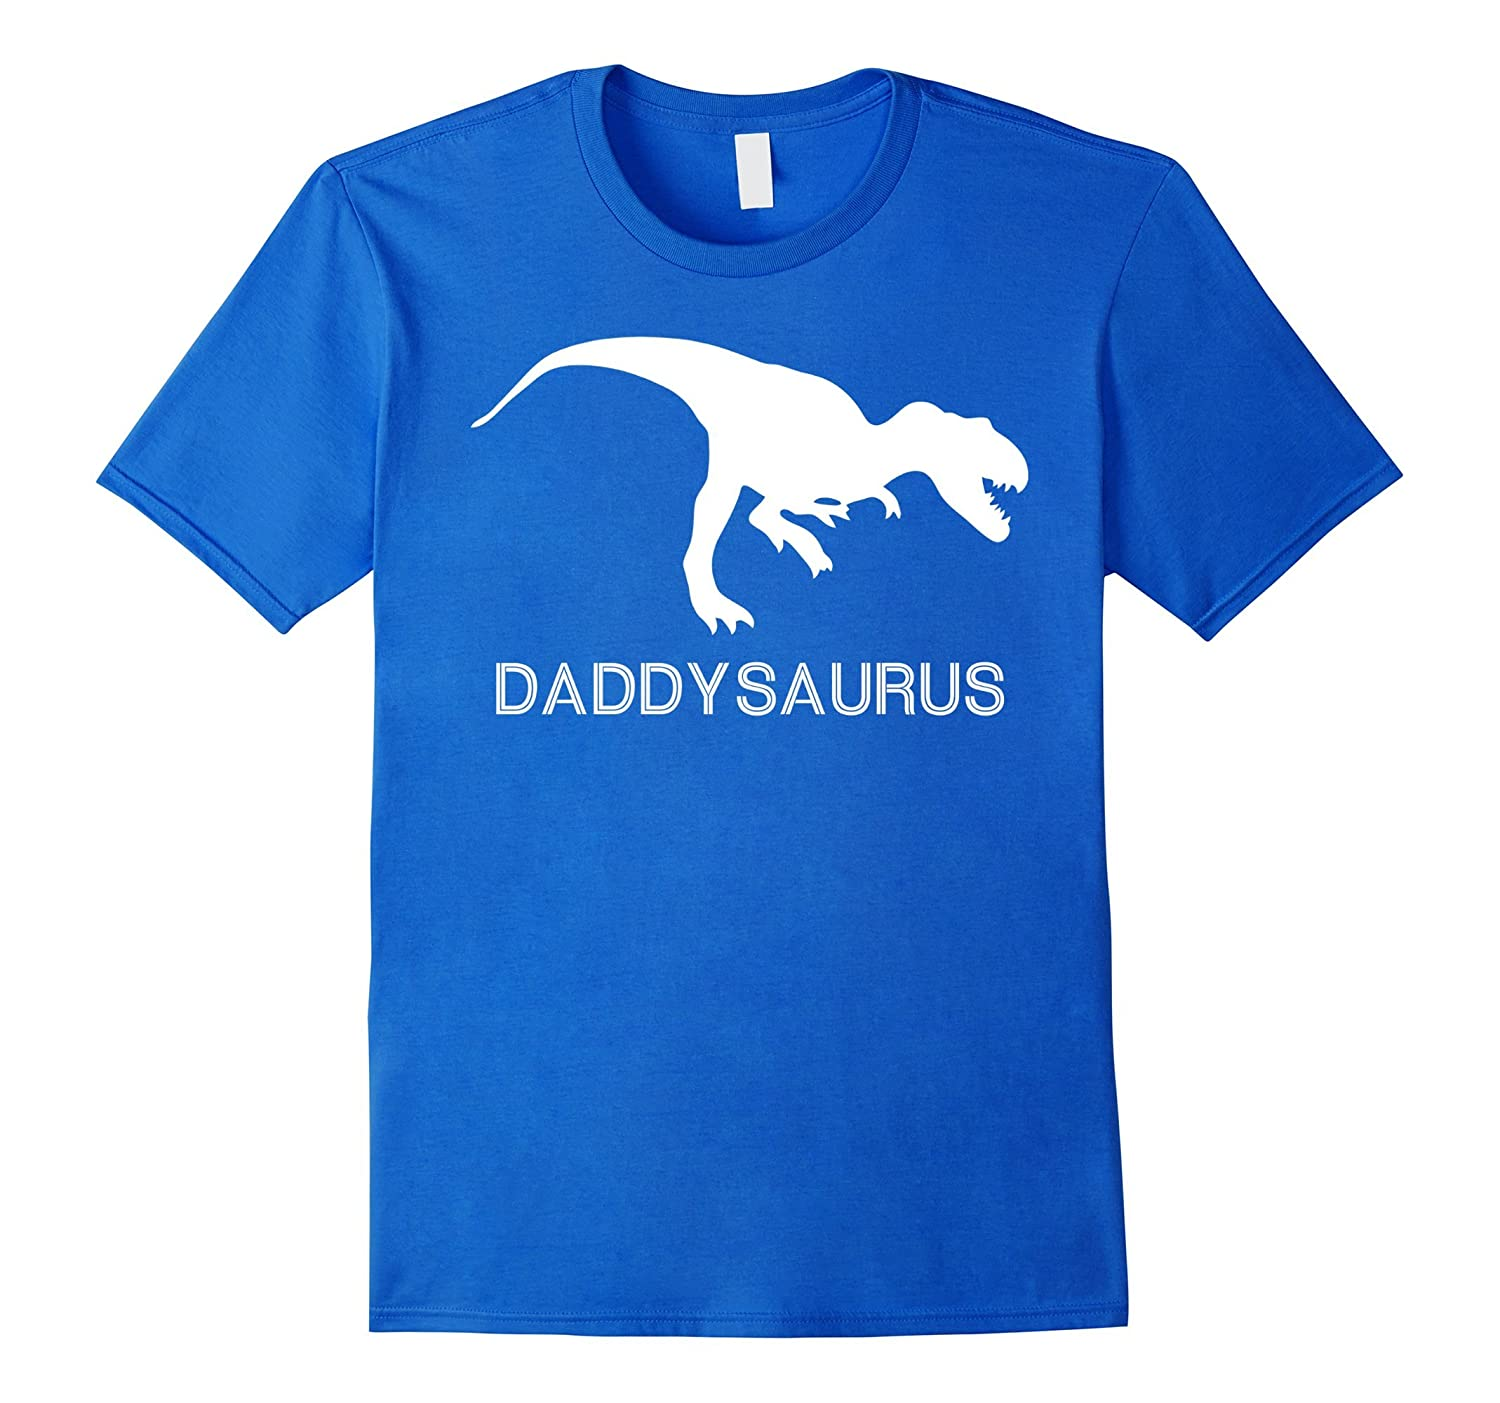 Daddysaurus T Shirt New Dad Birthday Present Father Day Gift RT